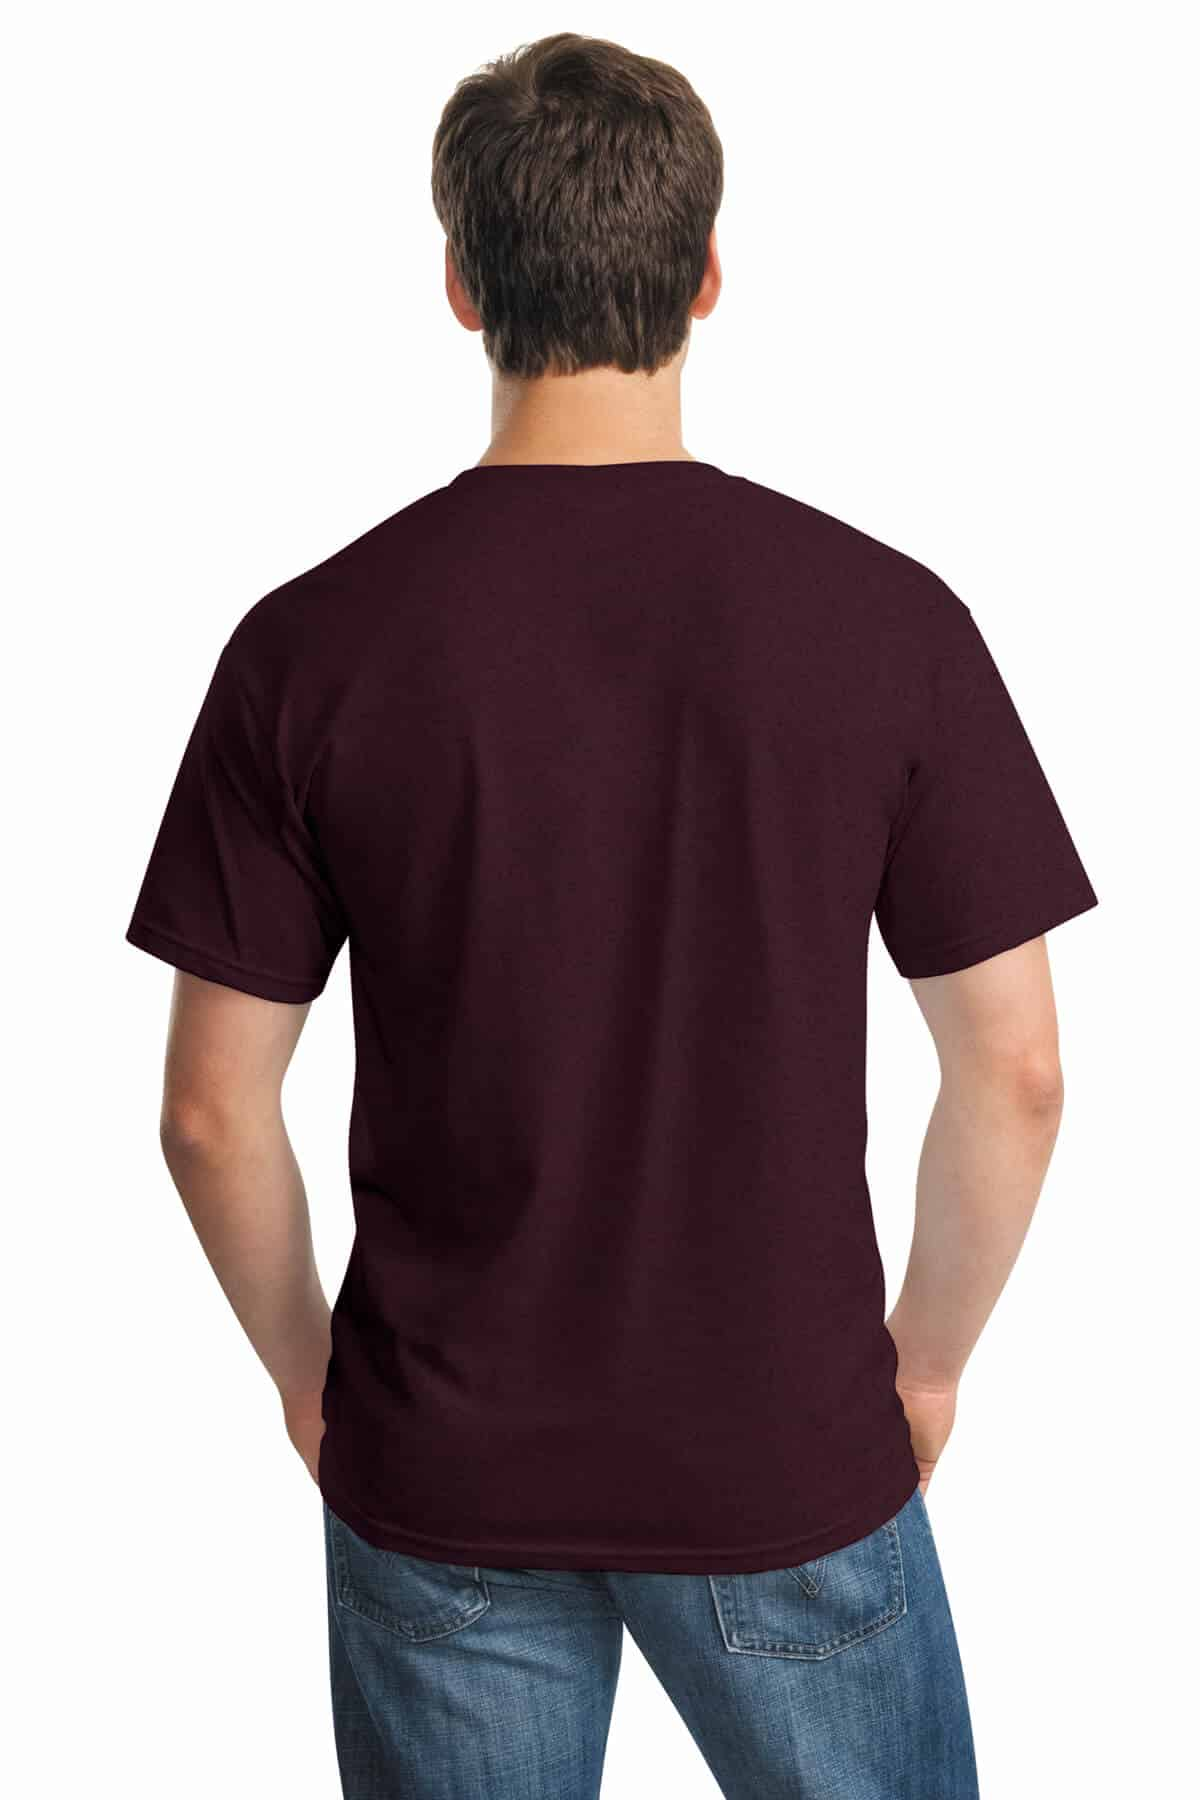 Russet Tee Back